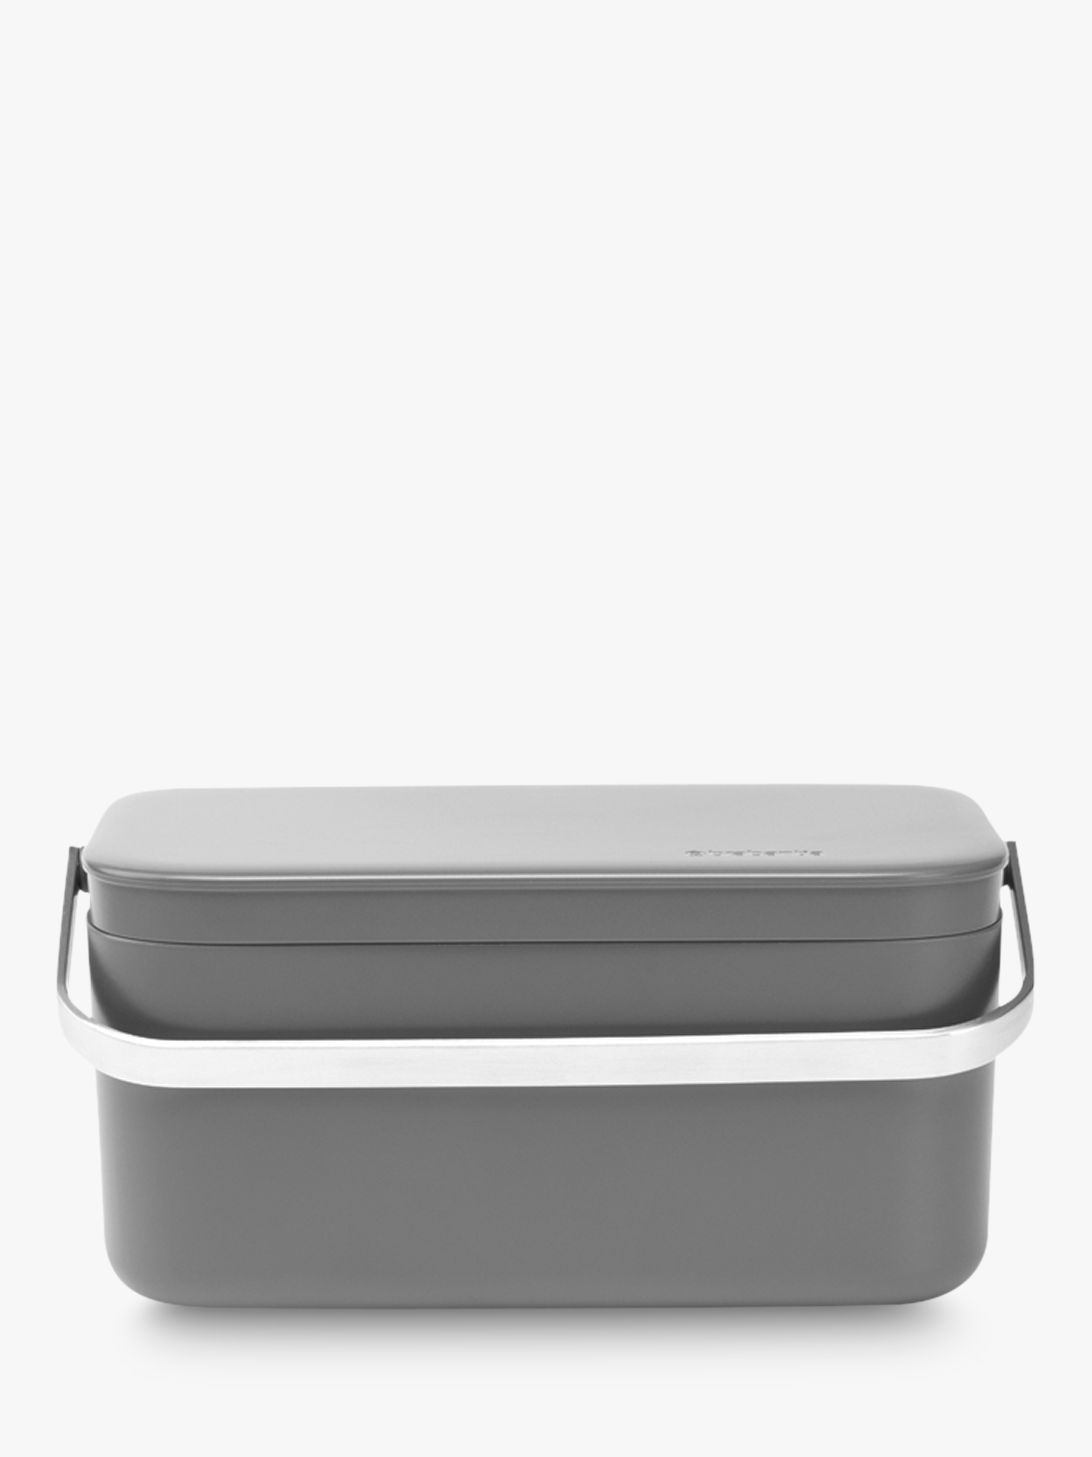 Brabantia Compost Food Waste Caddy Dark Grey at John Lewis